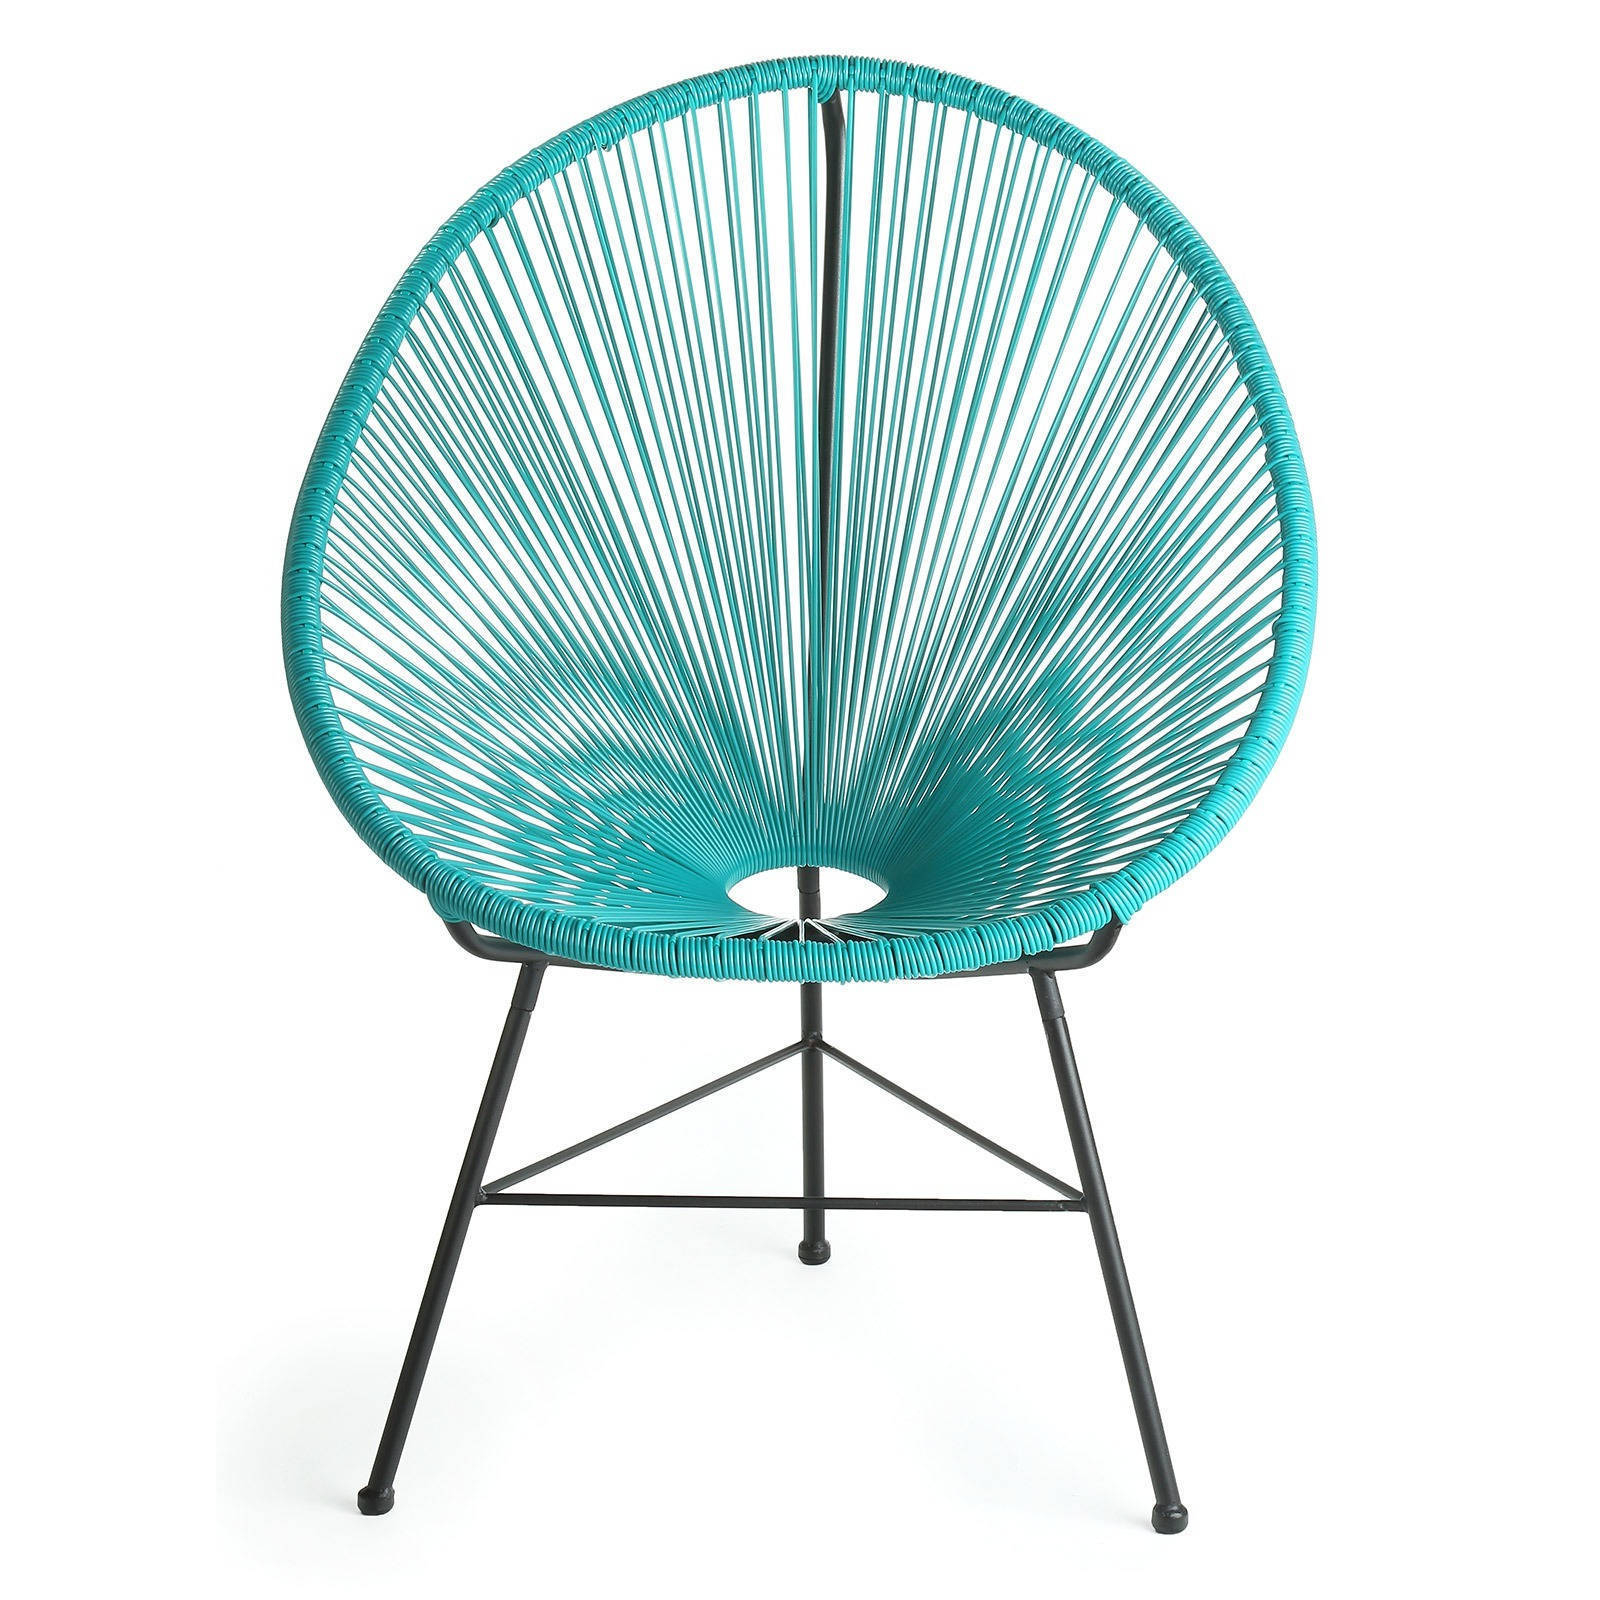 Famous Design Tree Home Acapulco Blue Lounge Chair (china In Handmade Acapulco Woven Indoor Outdoor Lounge Chairs (View 18 of 25)